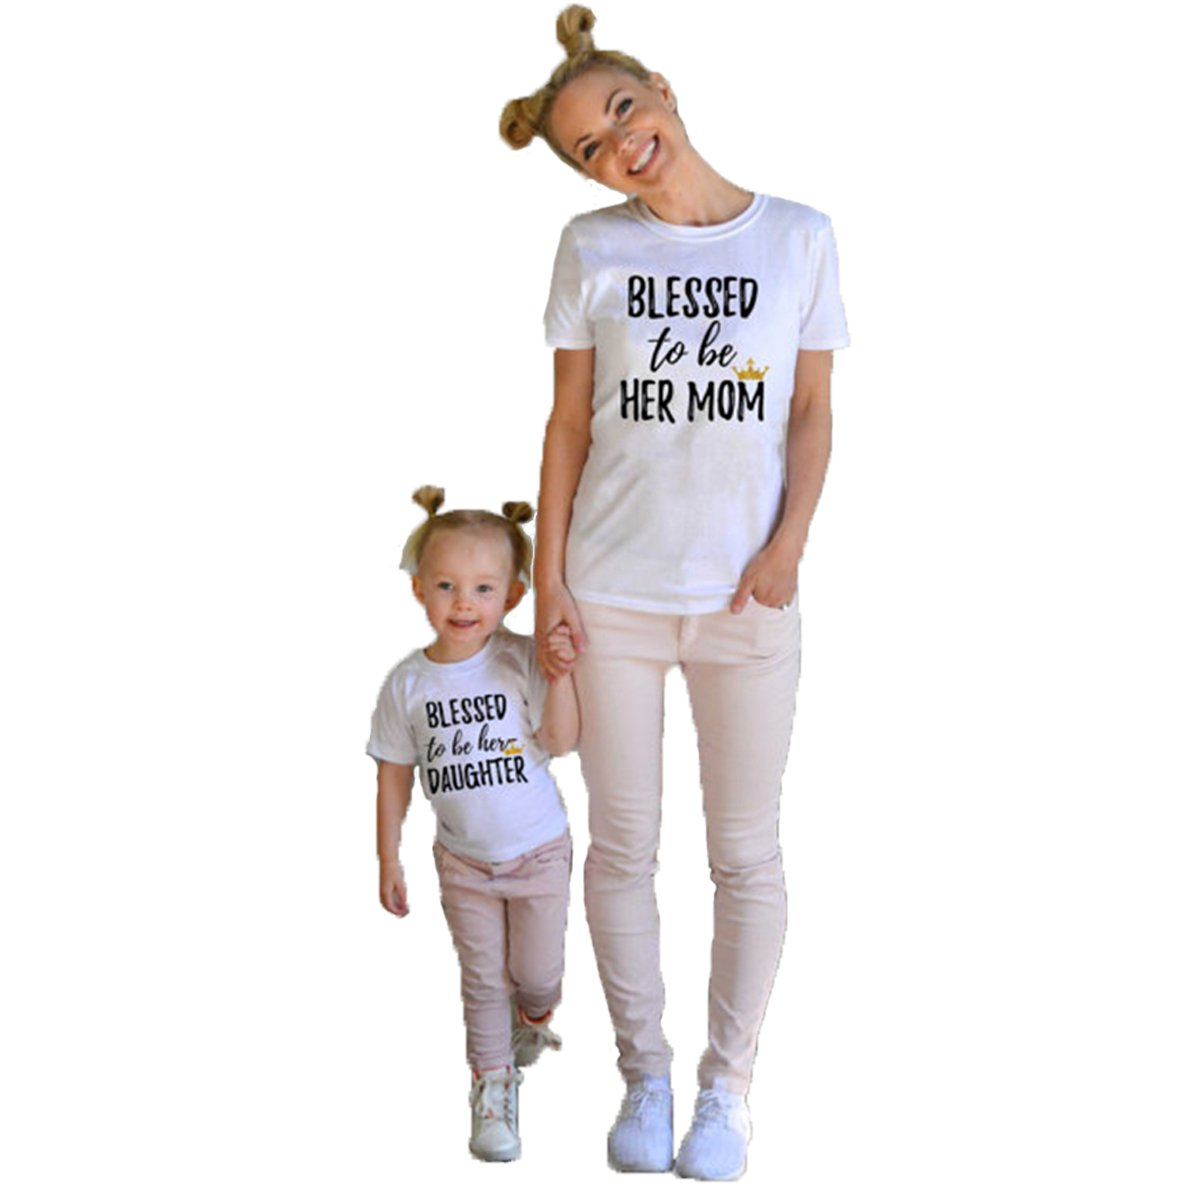 Franterd Mom Dad /& Baby Parent-Child Letter Printed T Shirt Family Clothes Outfits